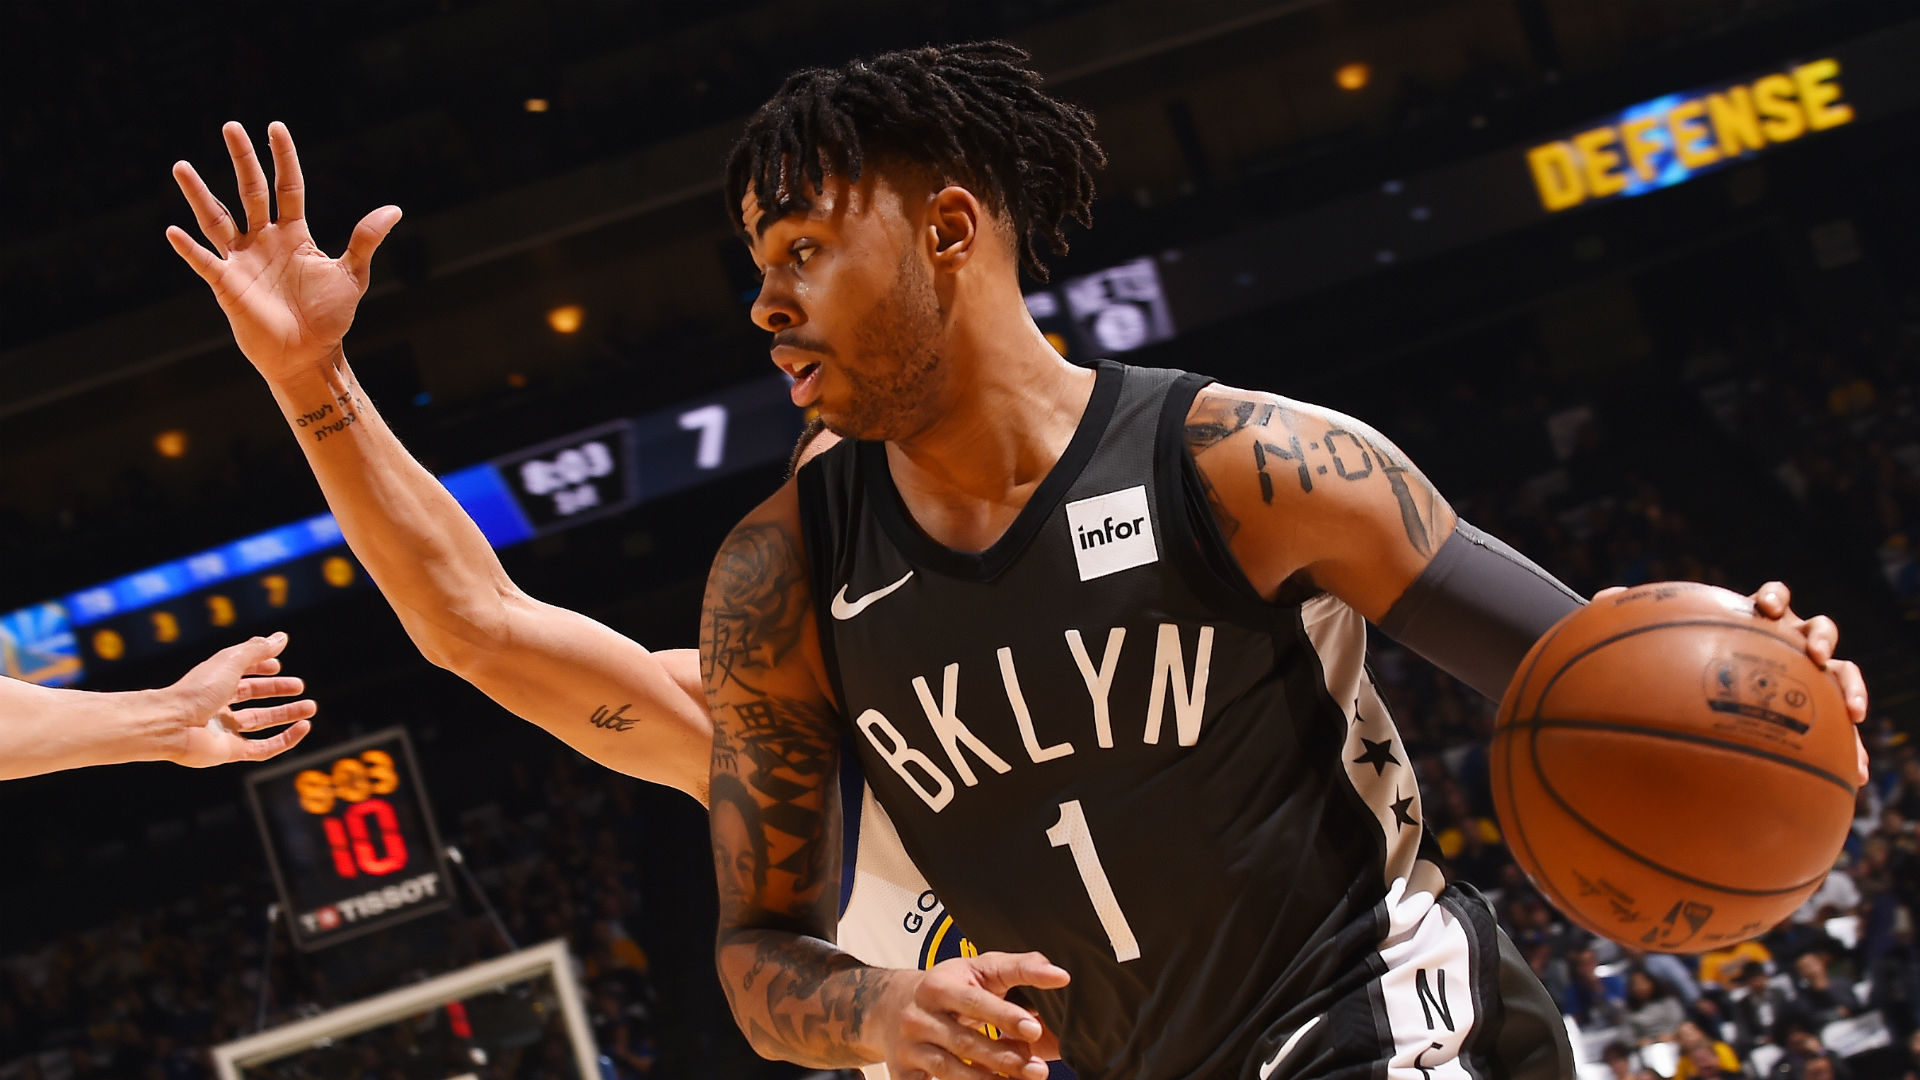 Nba Free Agency 2019 What S Next For D Angelo Russell And The Golden State Warriors Nba